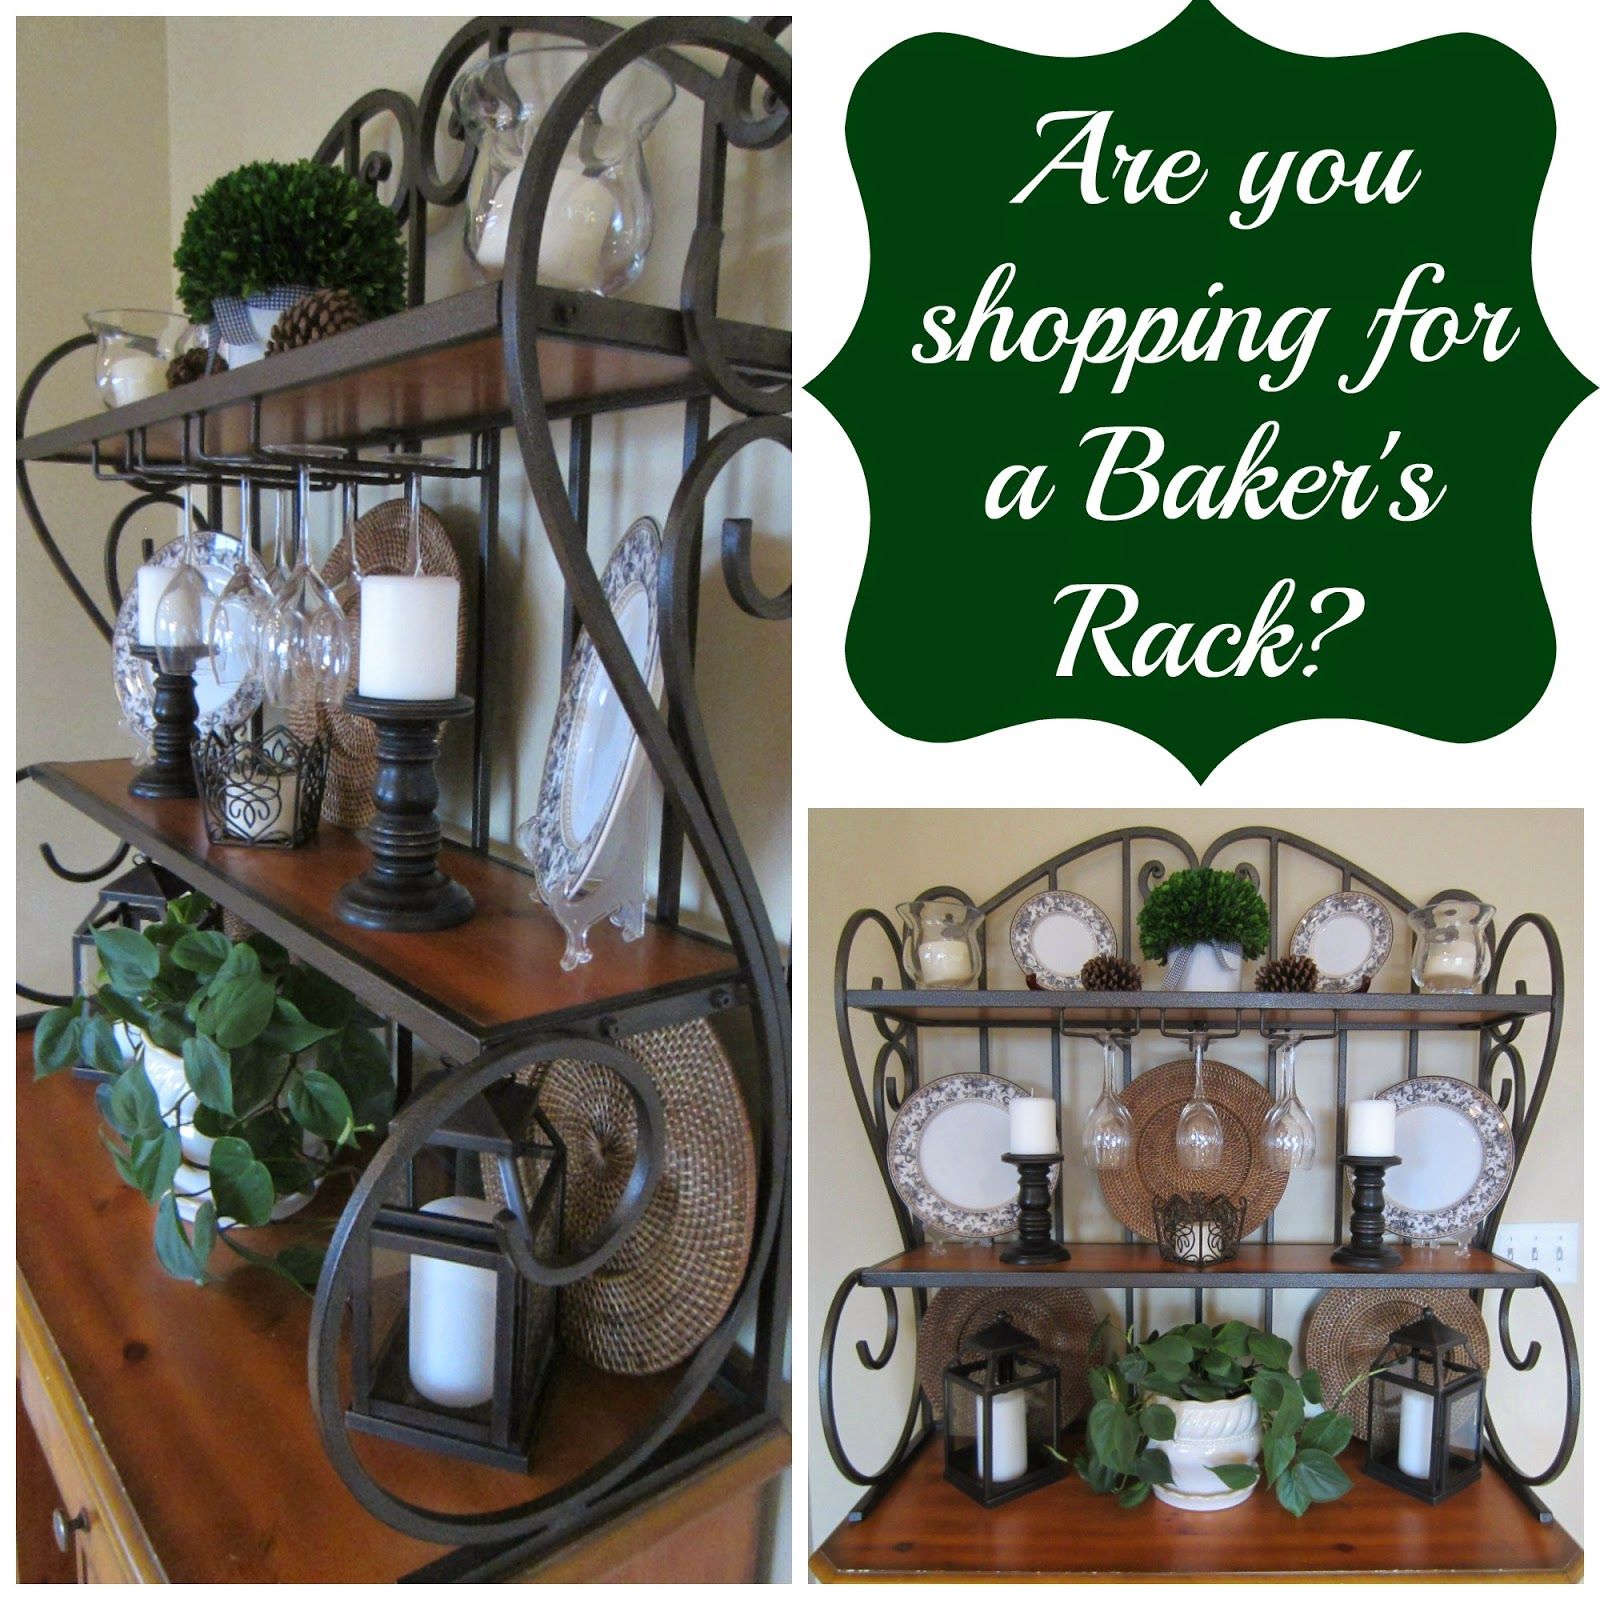 Where to buy a Baker's Rack - a few helpful sources